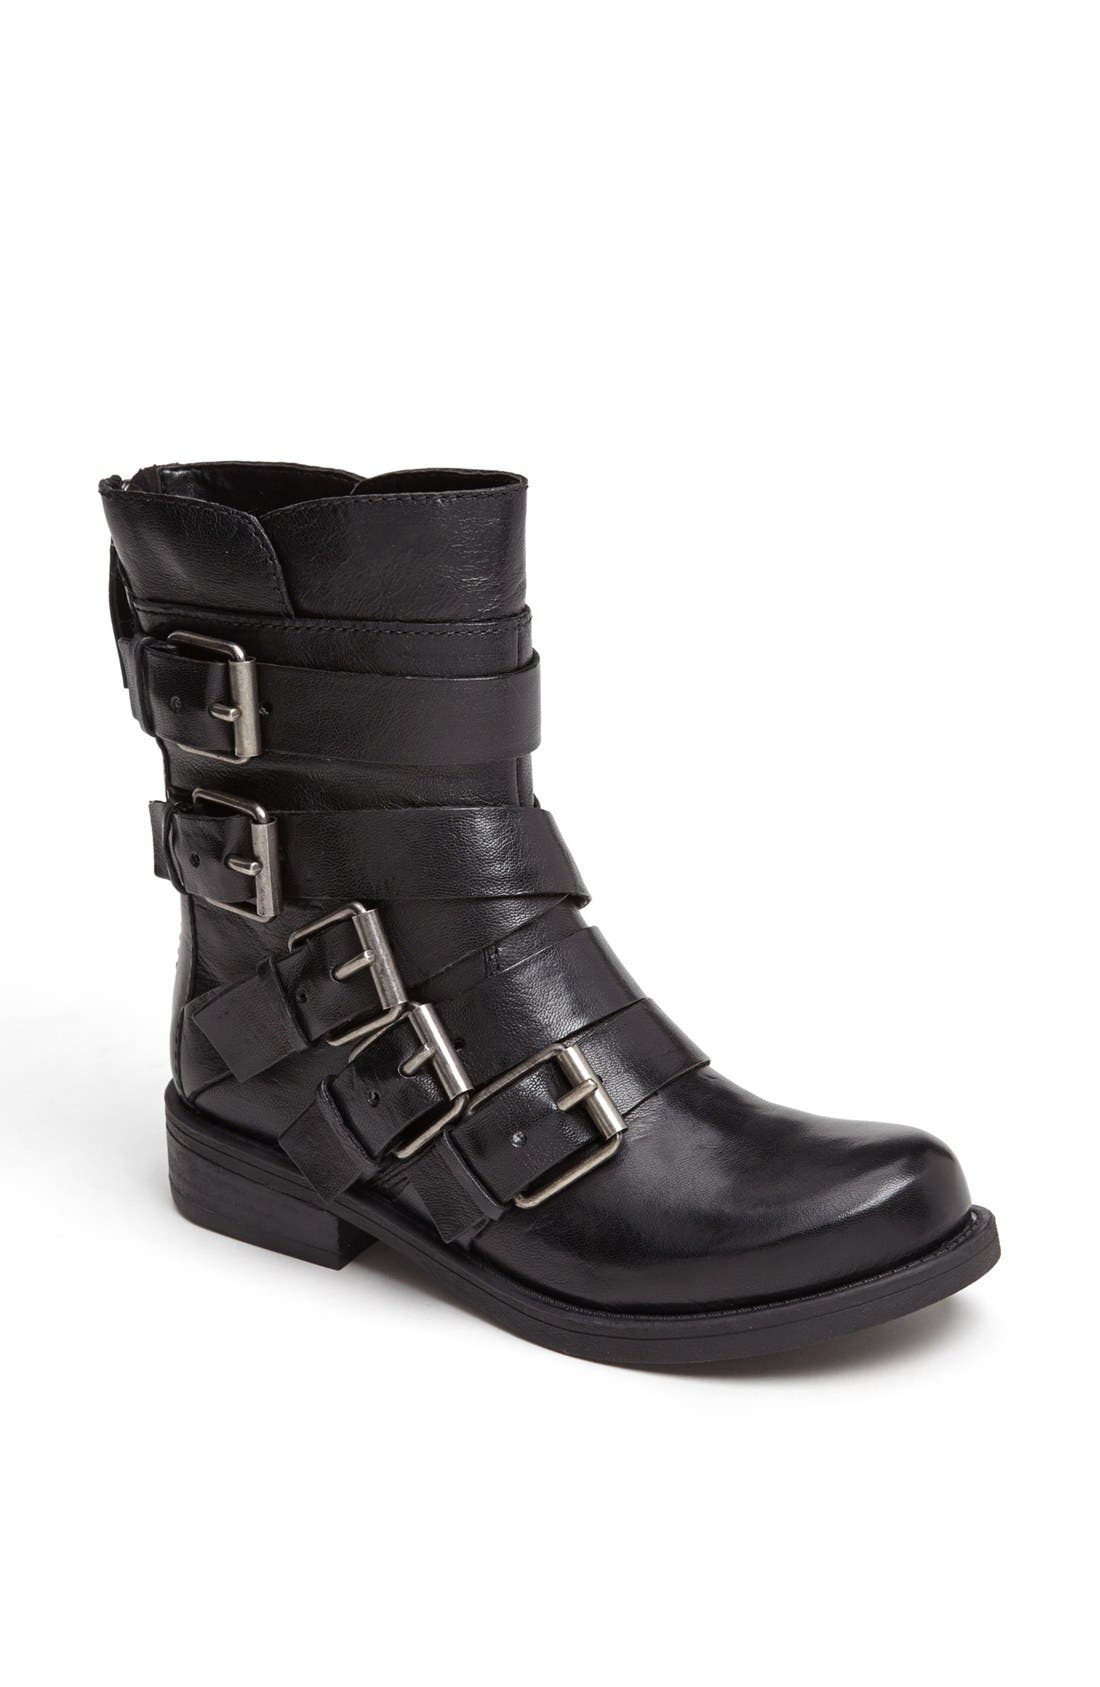 Alternate Image 1 Selected - Nine West 'Vintage America - Twistedme' Moto Boot